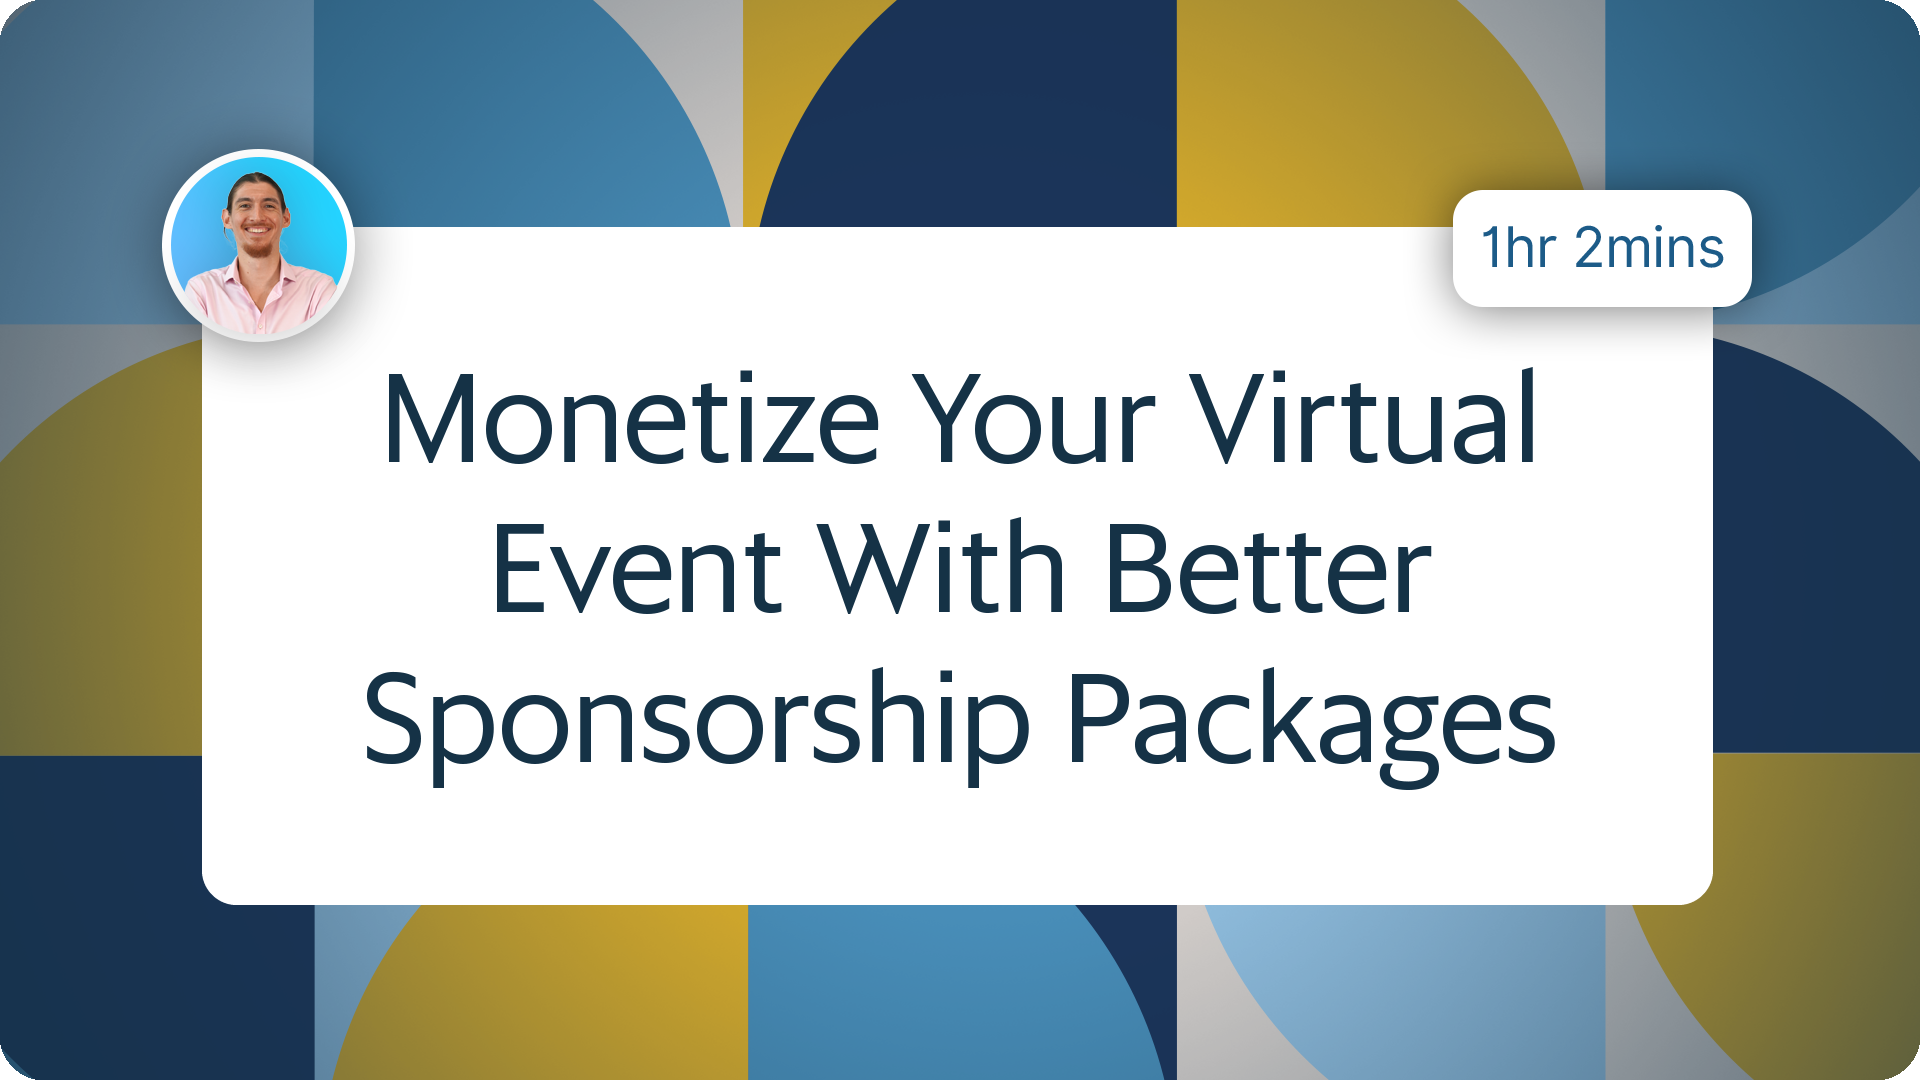 Monetize Your Virtual Event with Better Sponsorship Packages